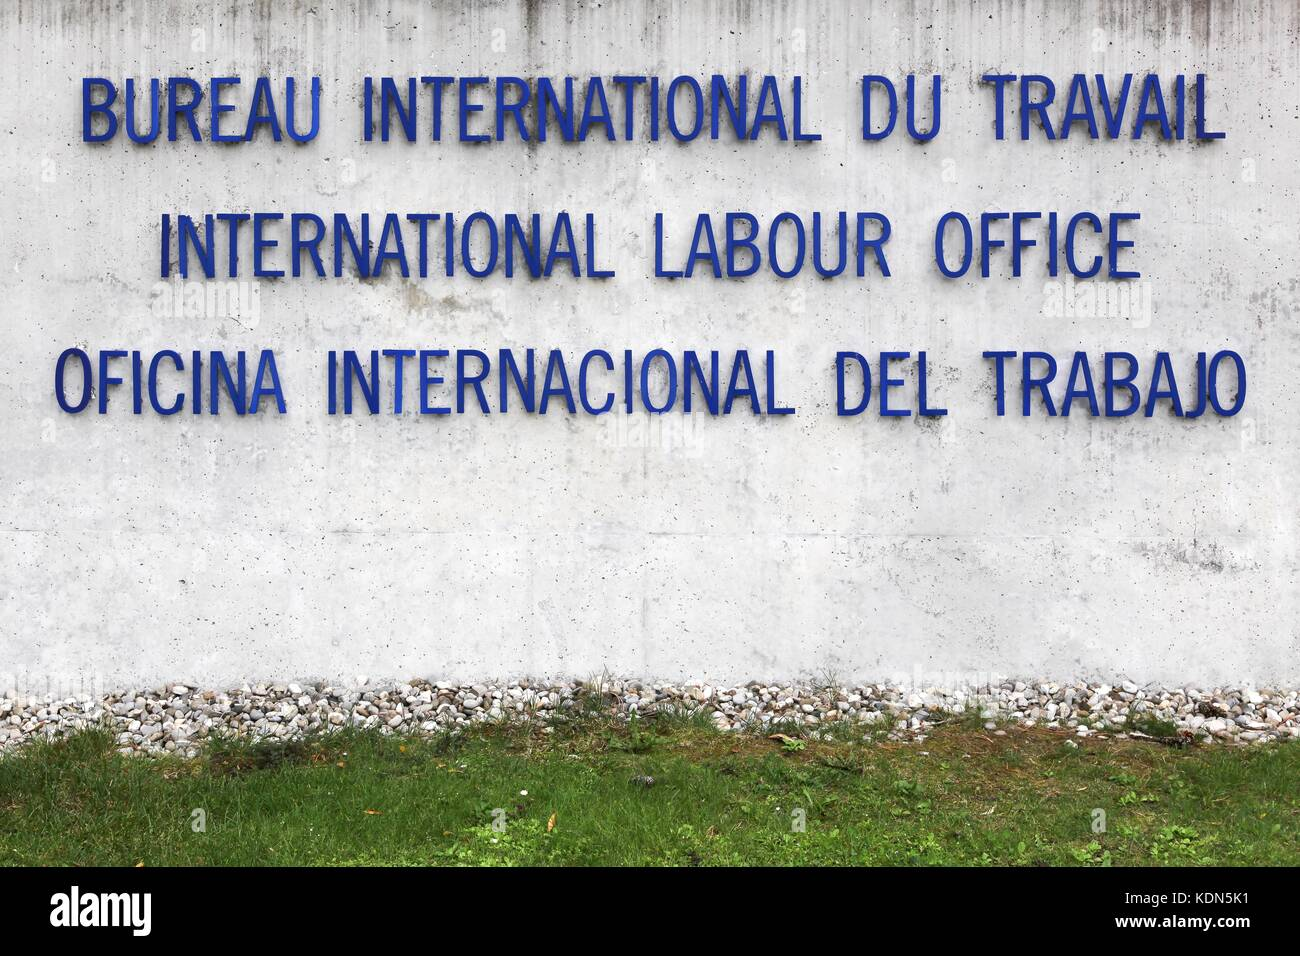 International labour office text on a wall.  ILO is a United Nations specialized agency which promotes international - Stock Image